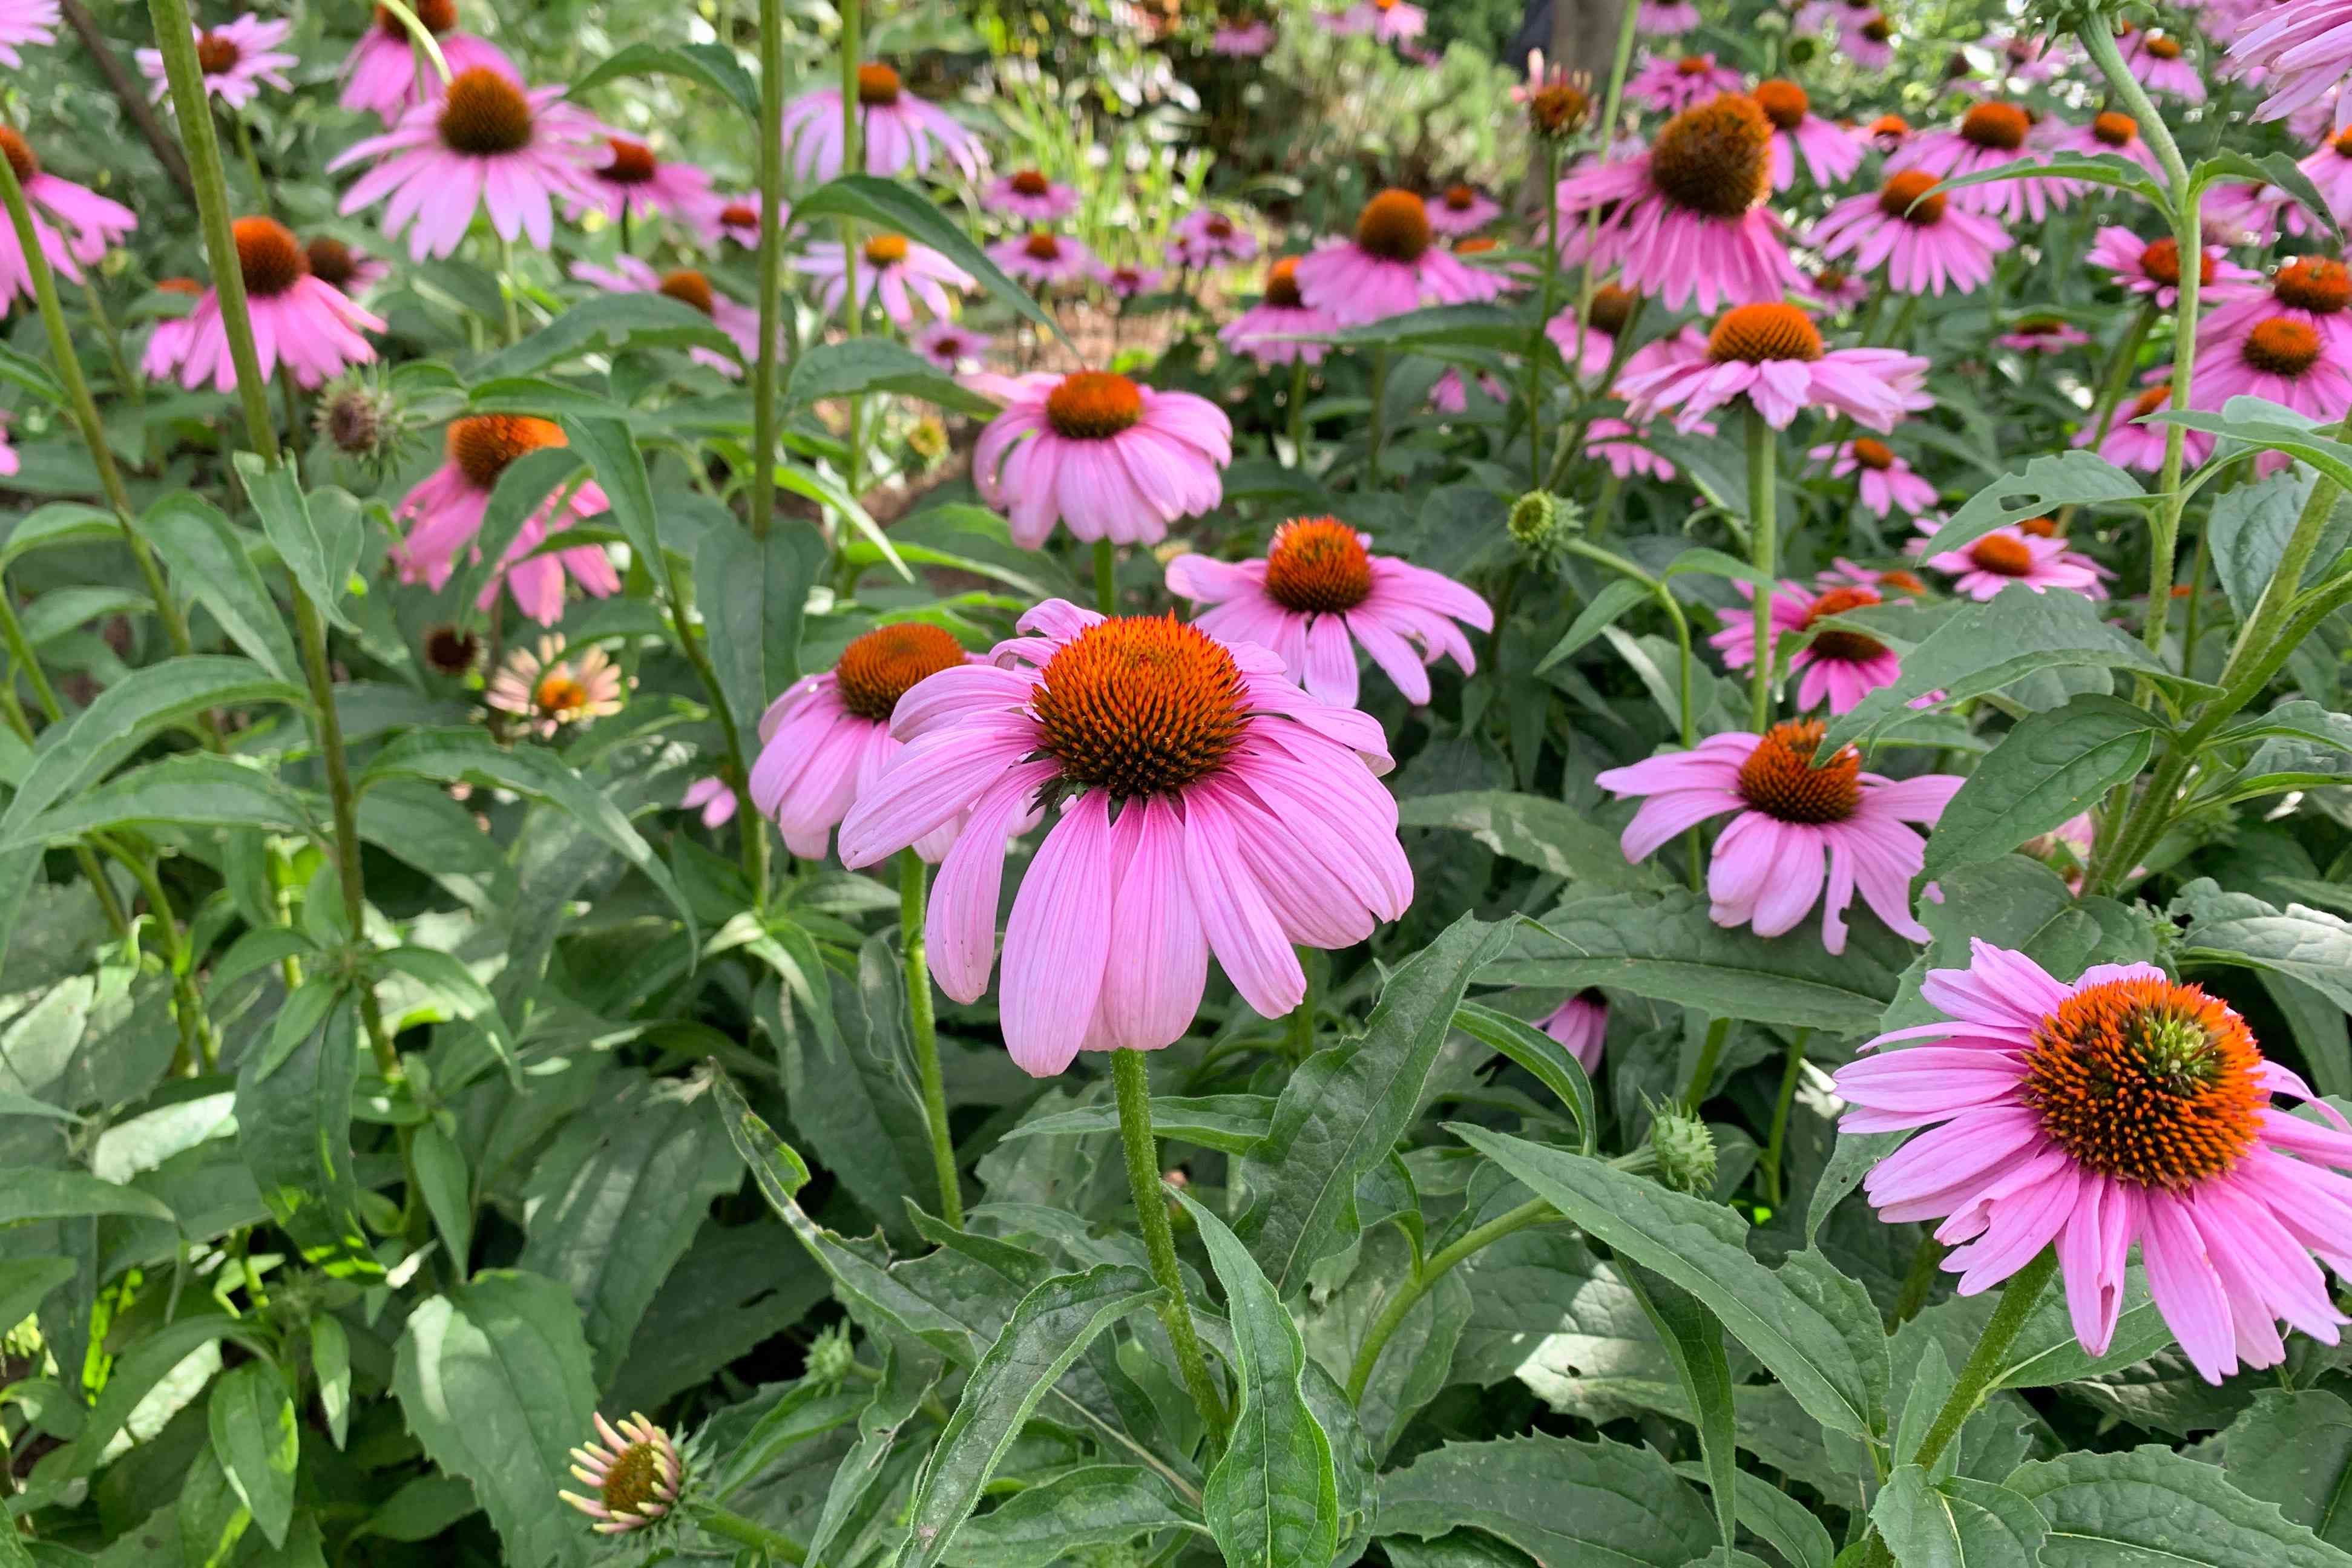 Coneflower plants with pink flowers and orange centers in garden